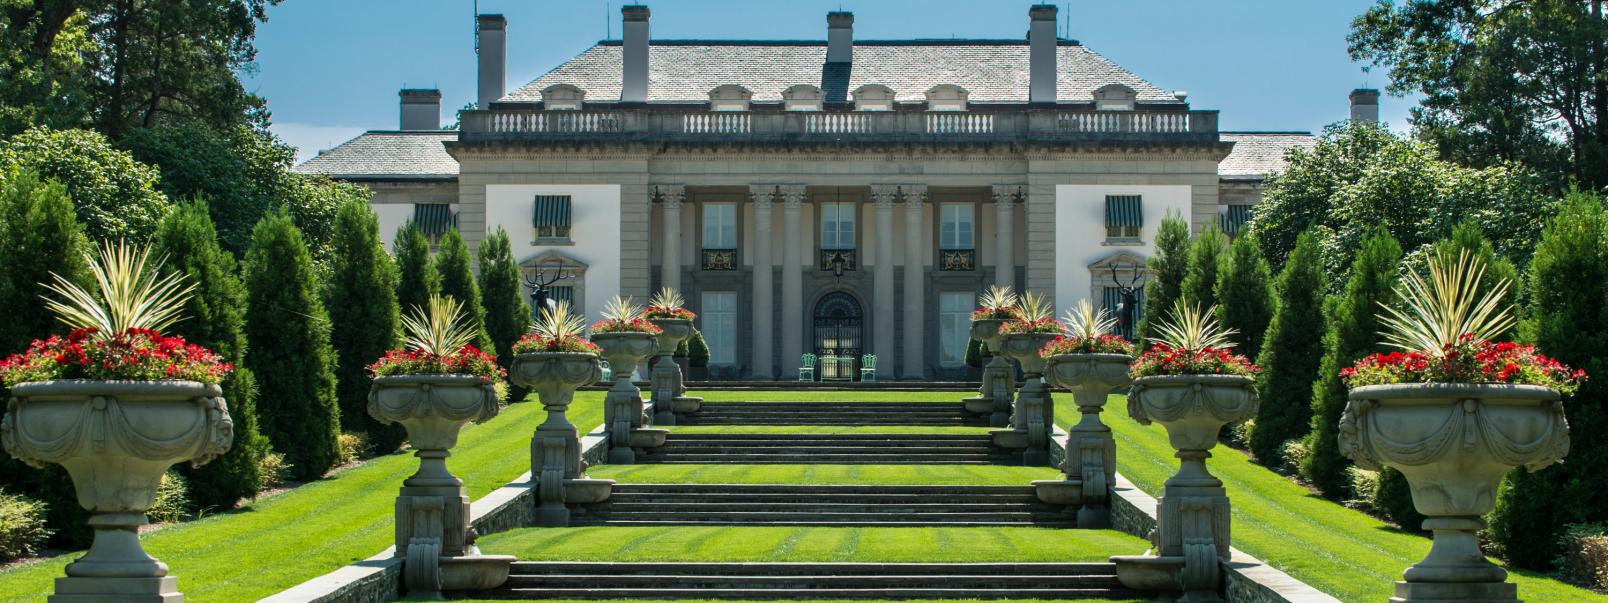 Nemours Mansion and Gardens surrounding Hospital